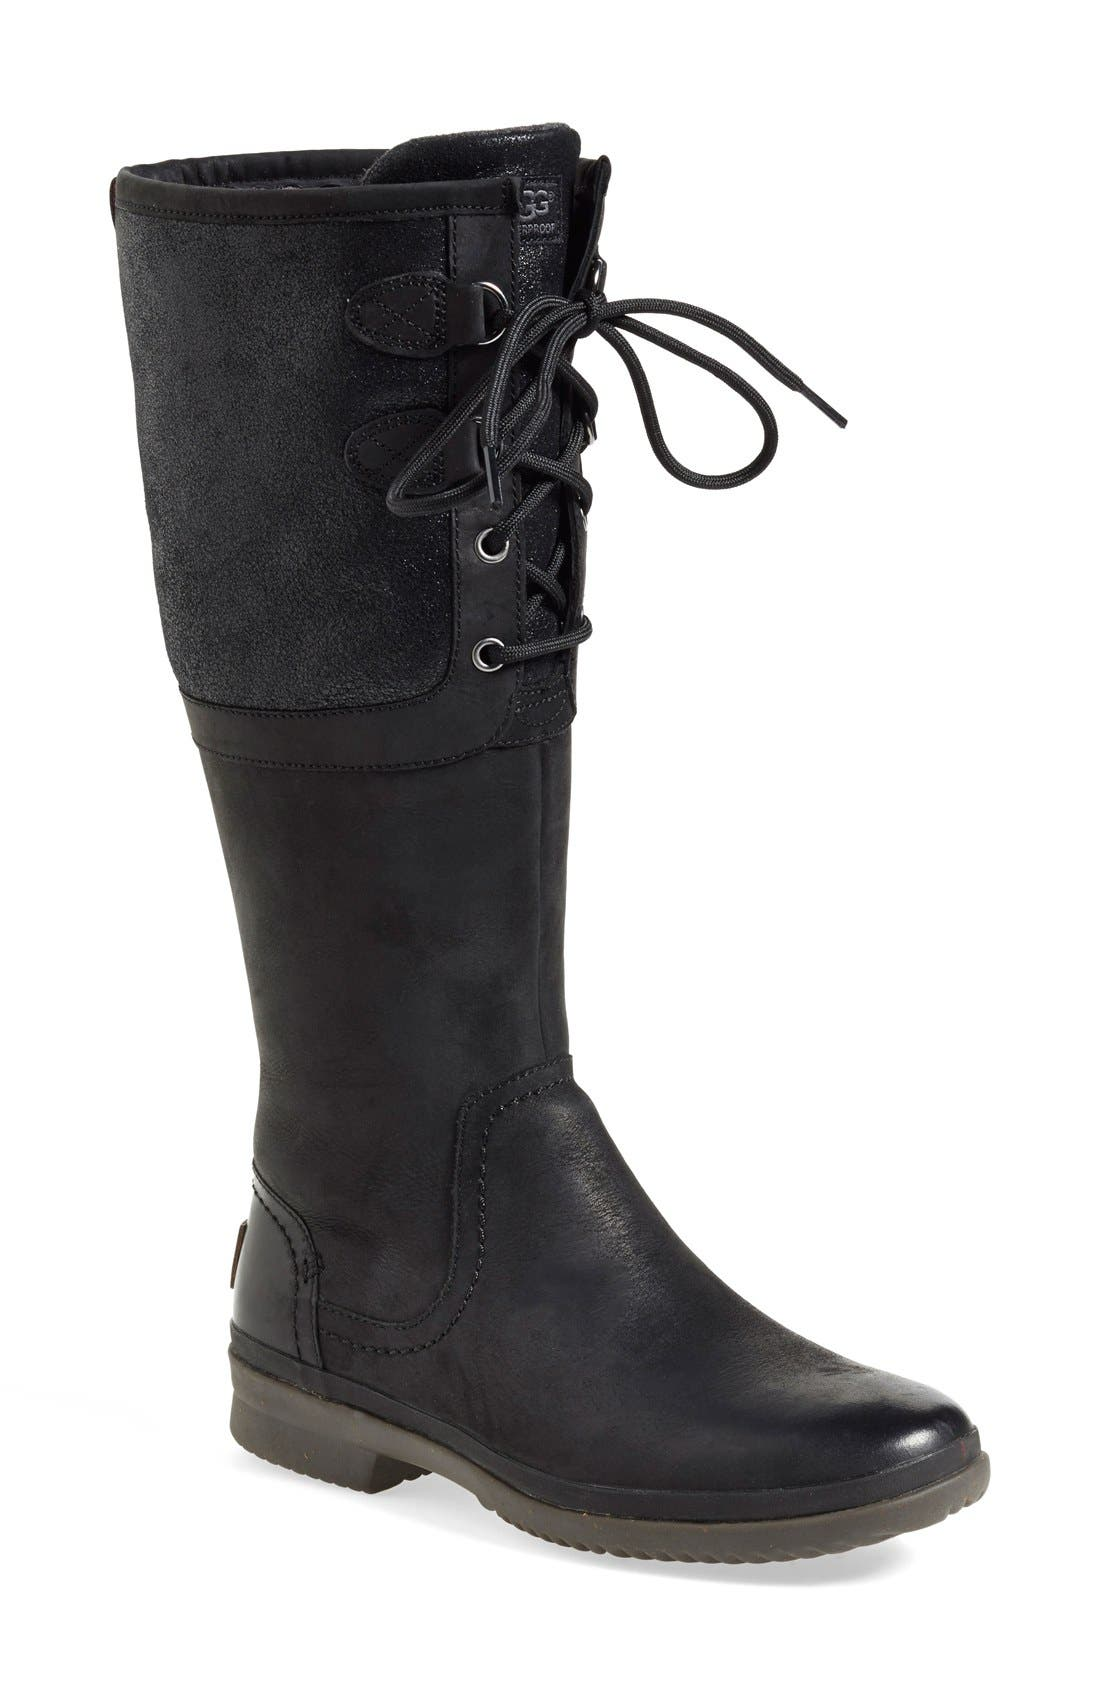 boots waterproof womens ugg